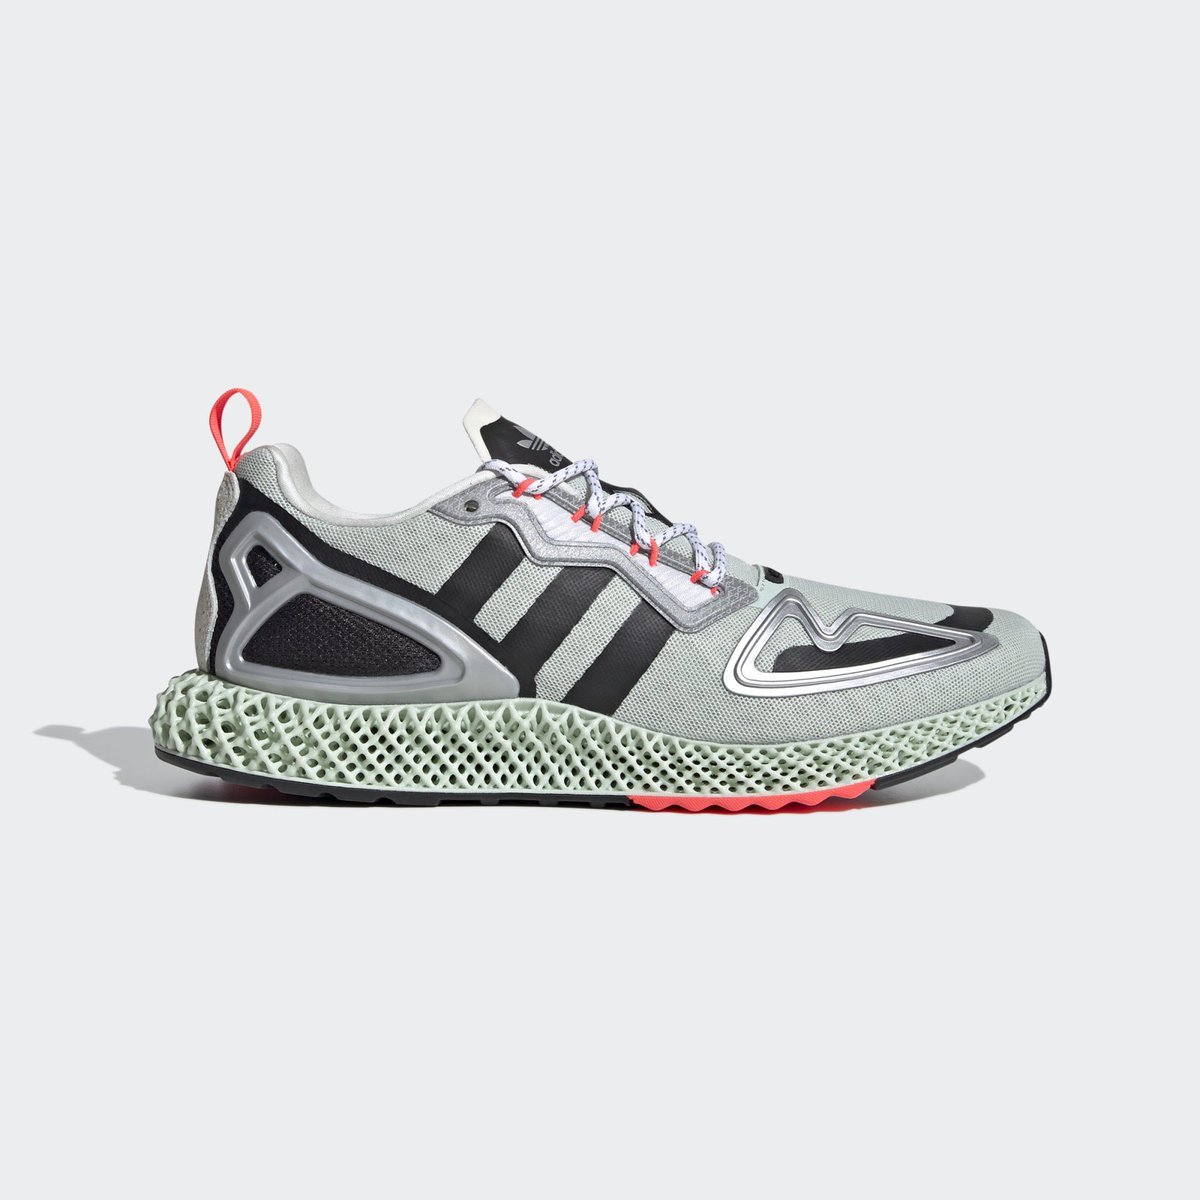 LIVE in 1 hour via @adidasUS: adidas ZX 2K 4D 'Cloud White/Signal Pink'  https://t.co/W1mHeE5iob  #AD https://t.co/x1nZQbZAfS